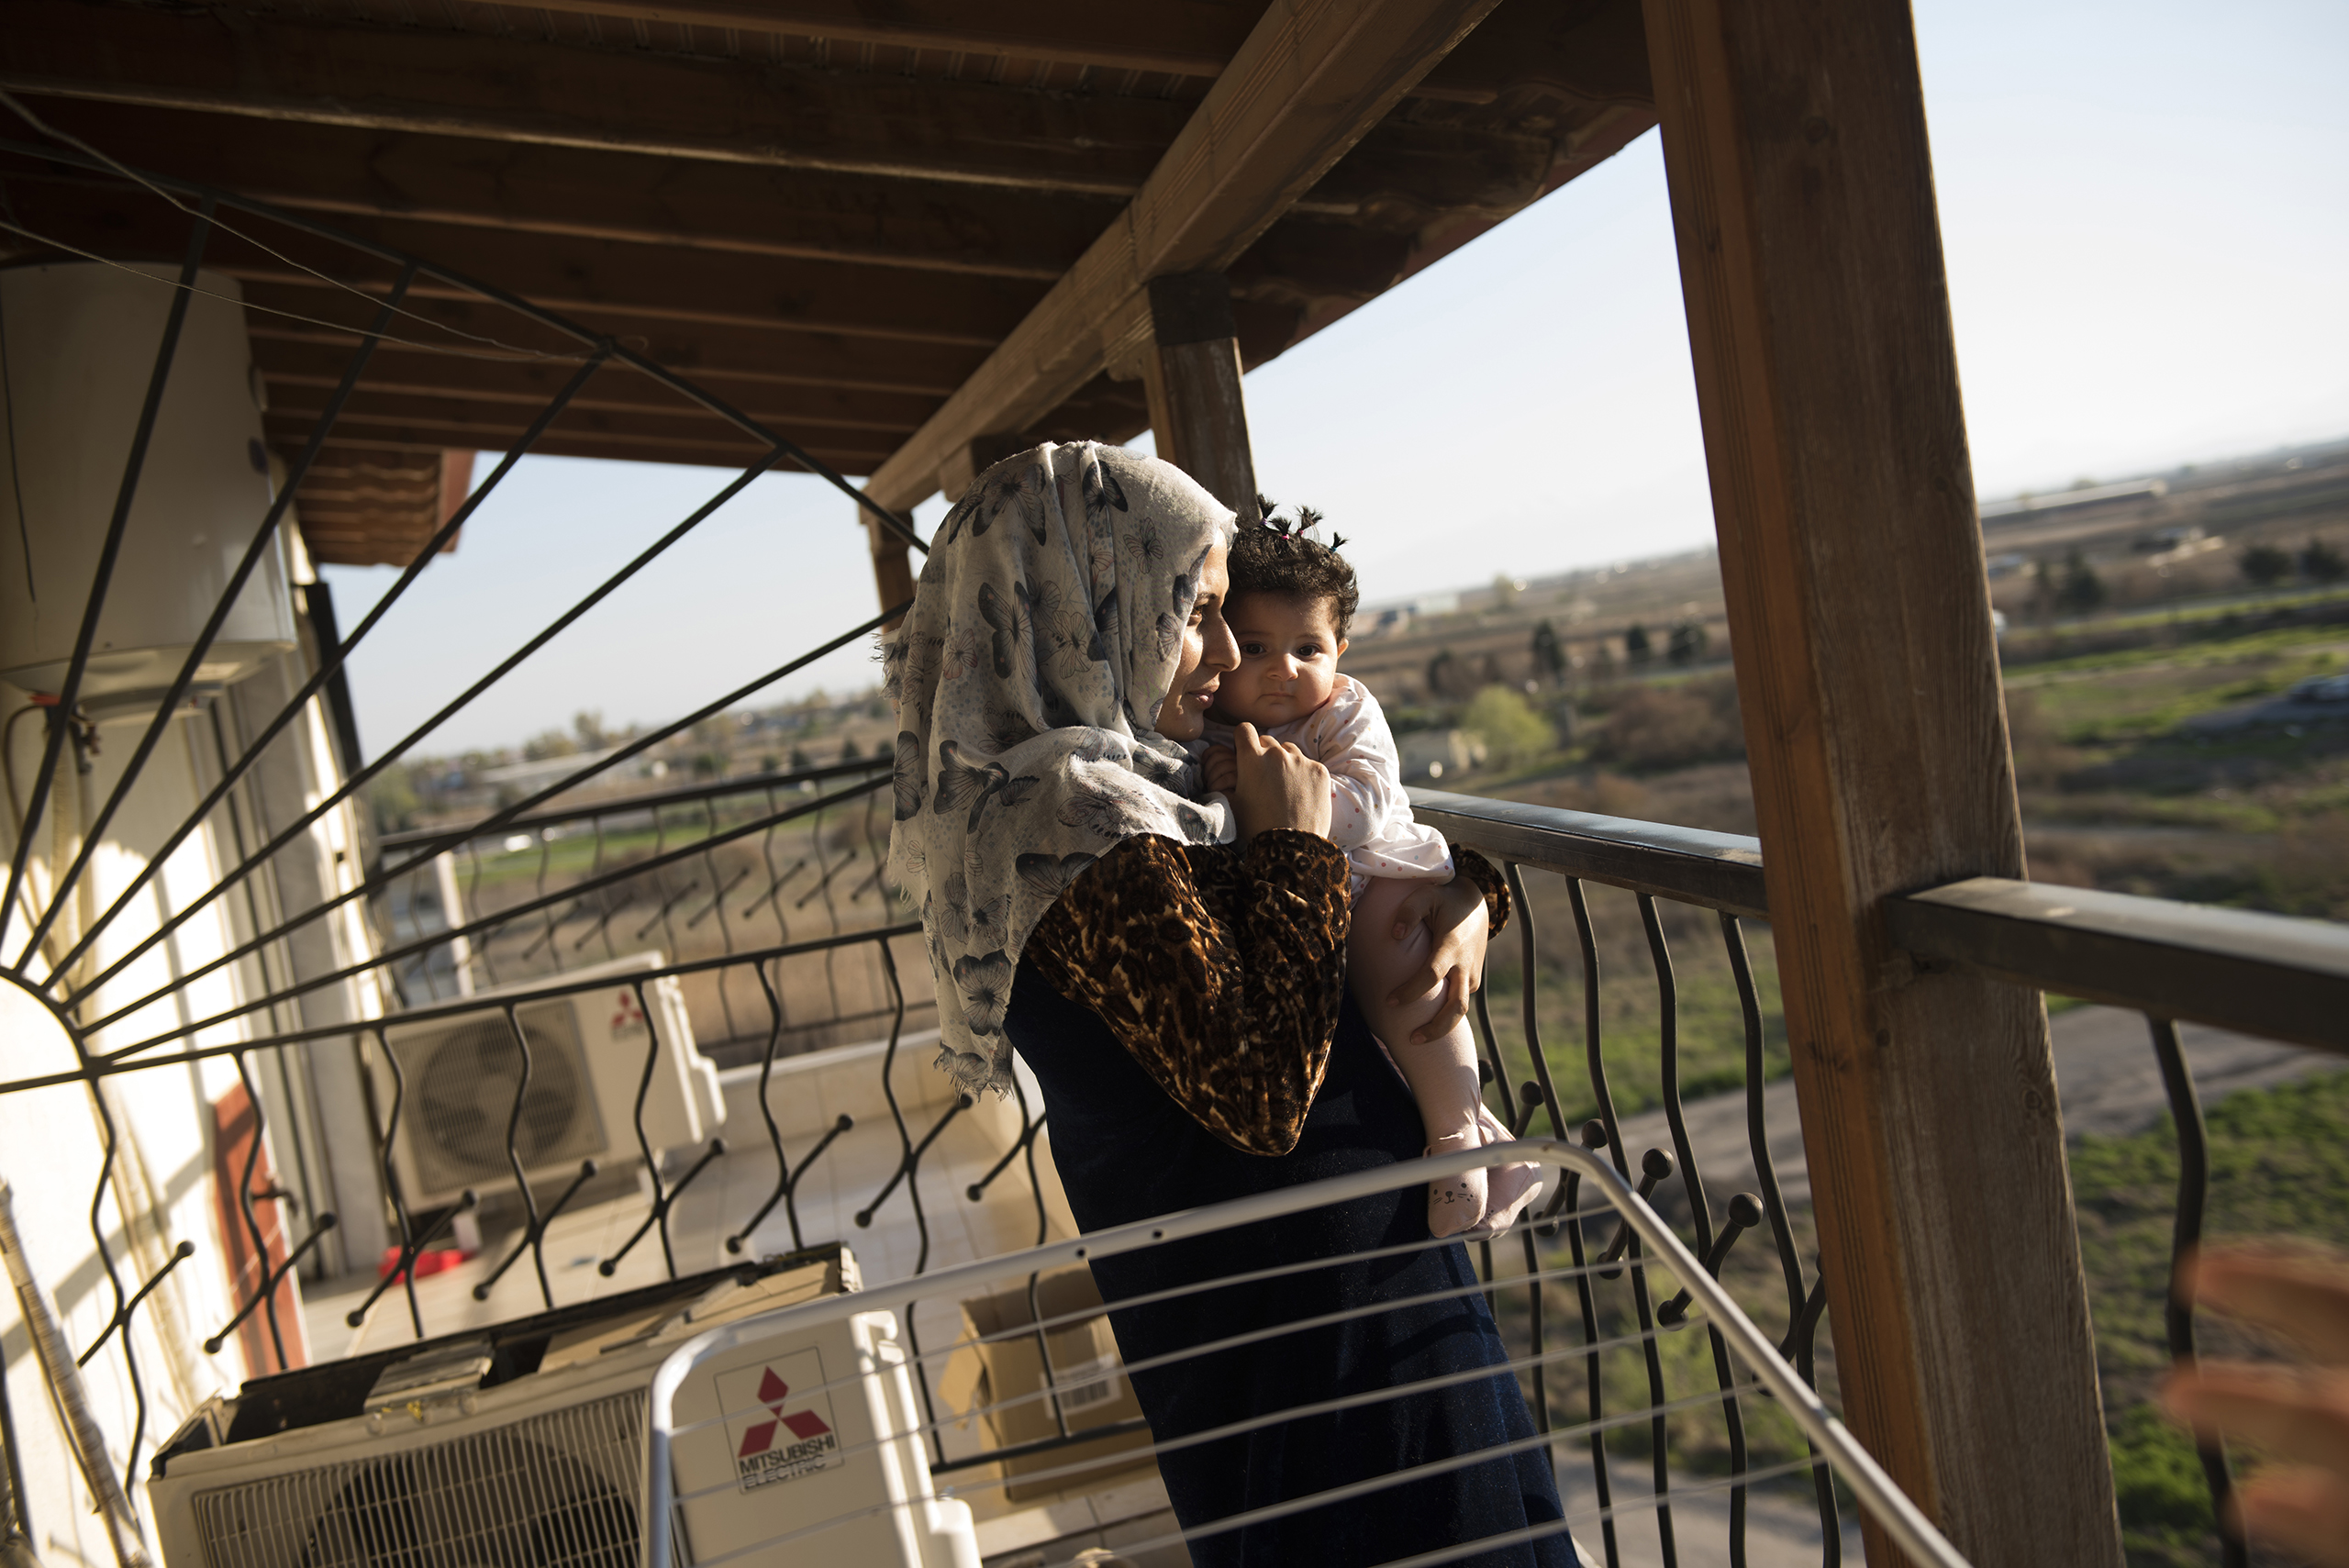 Noor Al Talaa, 22, stands on the balcony at dusk with baby Rahaf, almost 6 months, at an apartment in Sidros, outside of Thessaloniki, Greece, March 28, 2017.